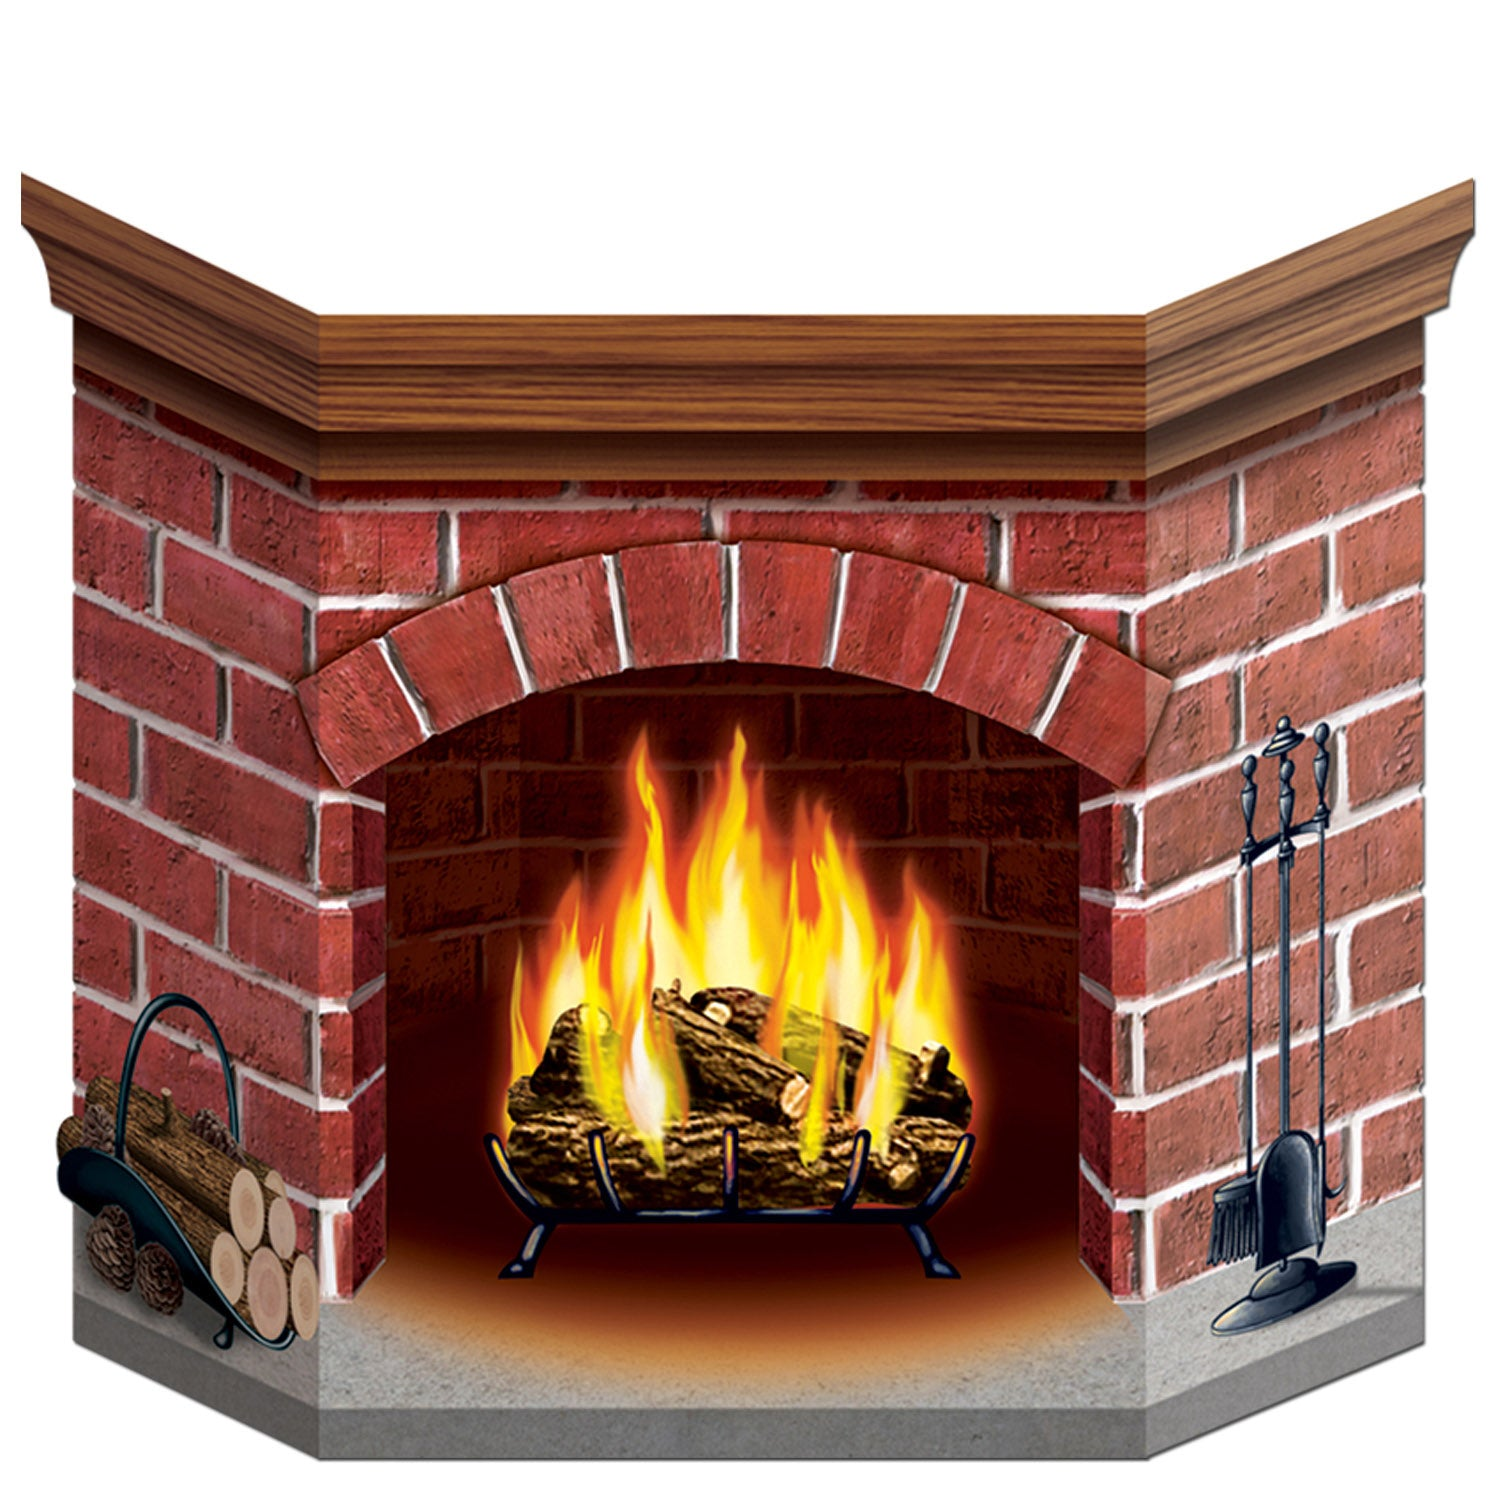 Brick Fireplace Stand-Up by Beistle - Winter and Christmas Theme Decorations